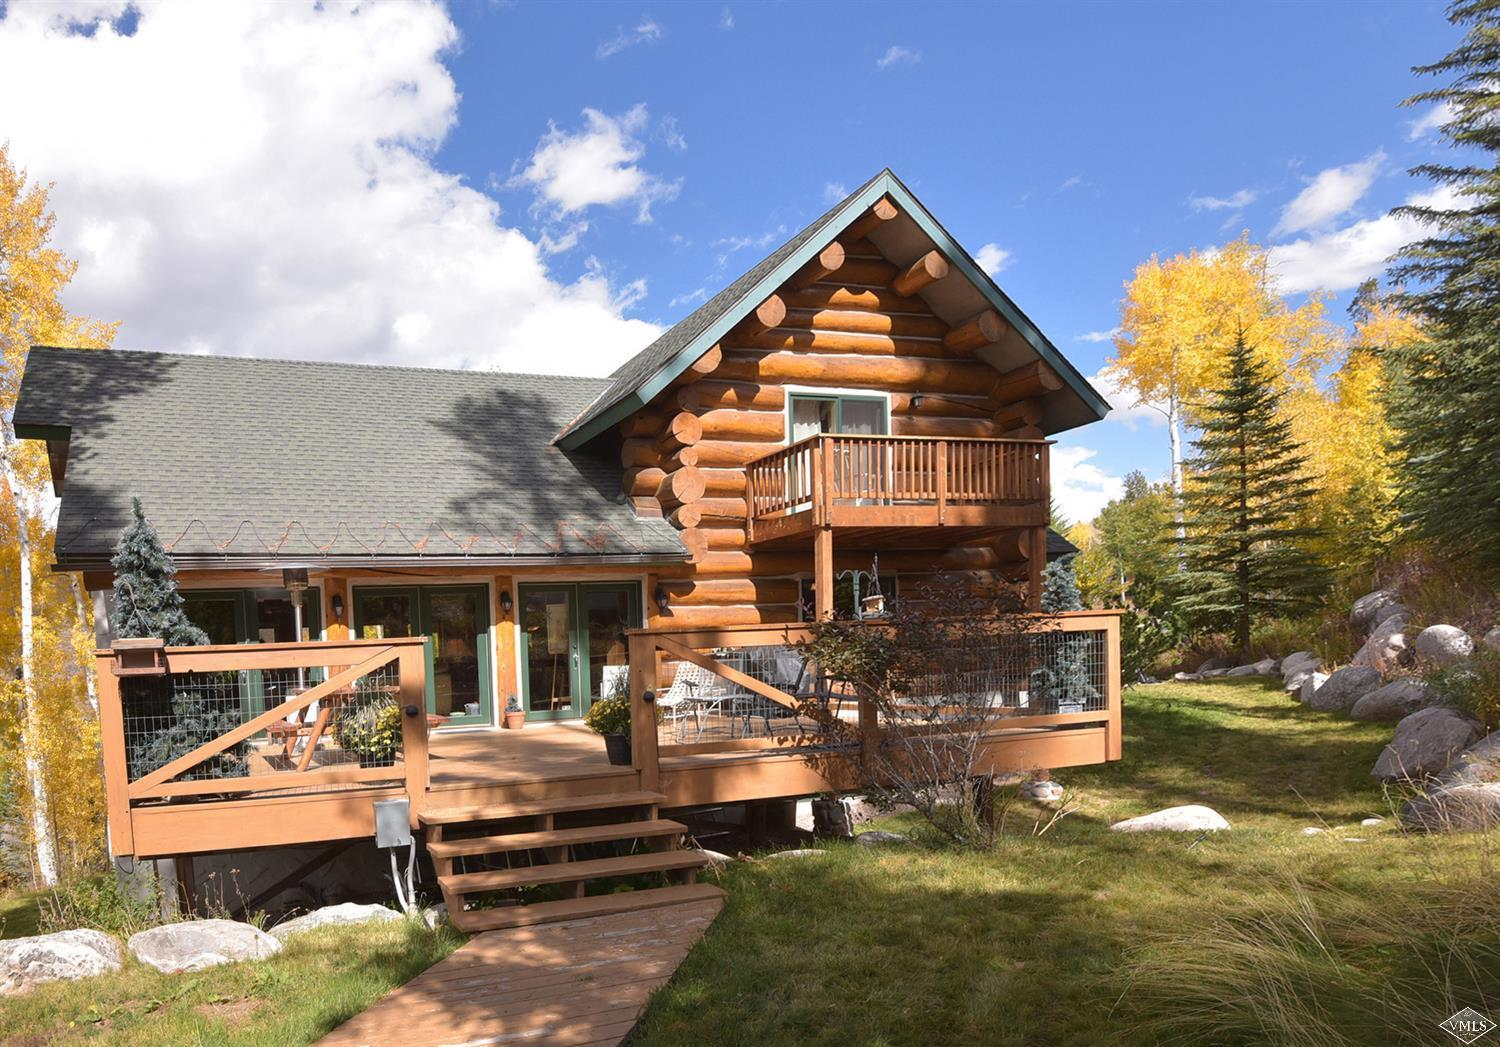 This custom-built log home surrounded by wildlife and national forest is the perfect place to relax and unwind. The main floor is perfect for entertaining or cozy nights by the fire - high vaulted ceilings provide a spacious feel in the living room which leads out to the back porch and hot tub overlooking National Forest. A massive wok provides ample opportunity to chef up in this kitchen. Downstairs, two bedrooms share an additional living and dining area and an exercise room leads into an in-law suite equipped with a separate kitchen, dining room & washer/dryer. Upstairs, the master and guest room enjoy private decks with gorgeous views. Plenty of room for ten people to sleep comfortably. The craftsmanship and detailing in this home is not to be missed. No words can describe the serenity while sitting on the back porch of this home - come see for yourself.